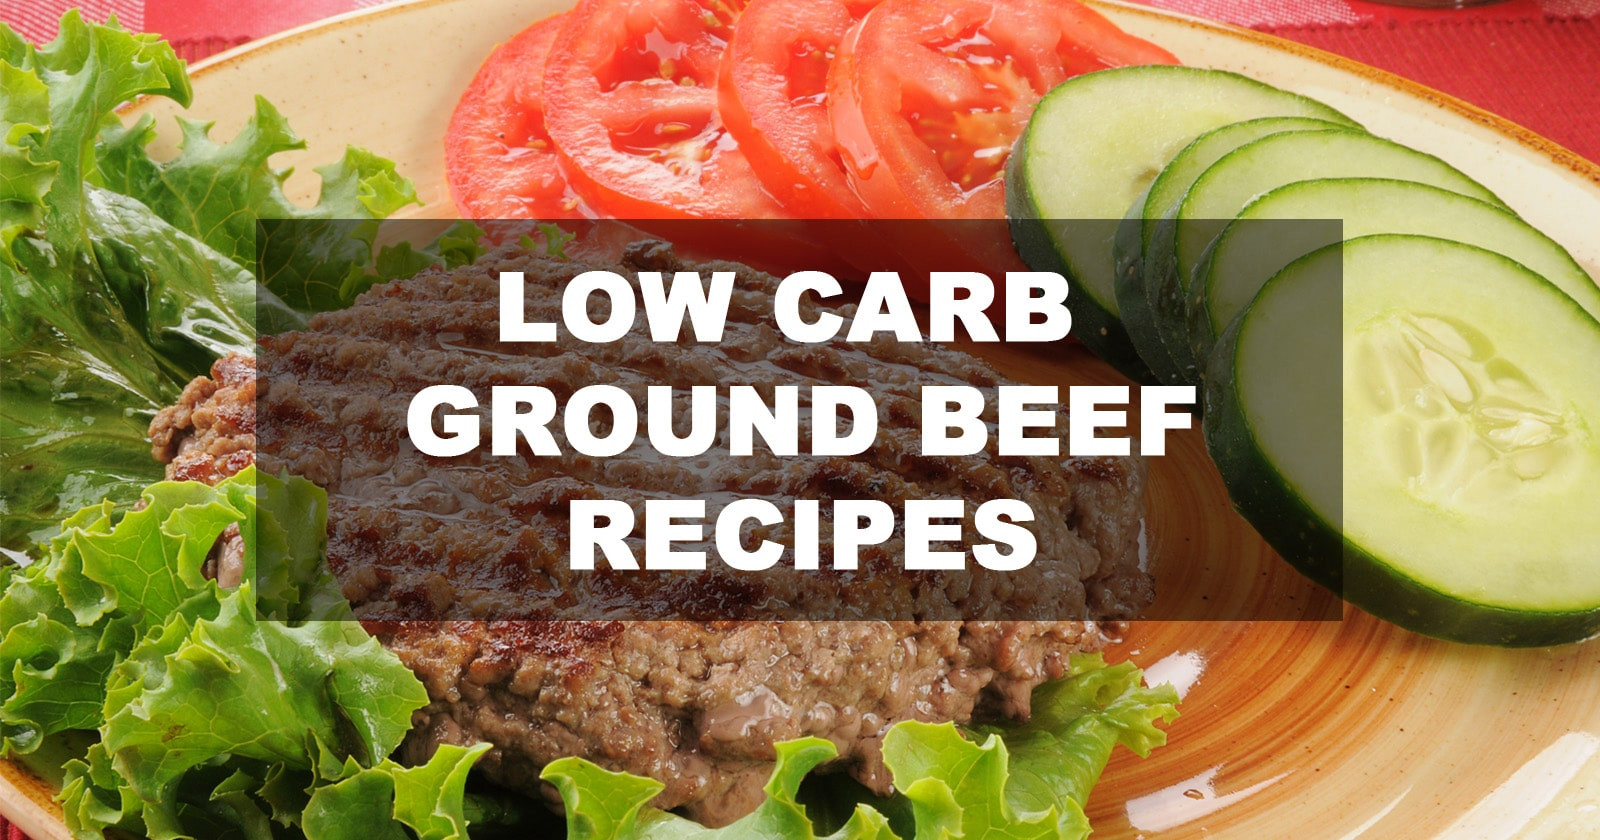 Low Calorie Recipes Ground Beef  Best Low Carb Ground Beef Recipes October 2018